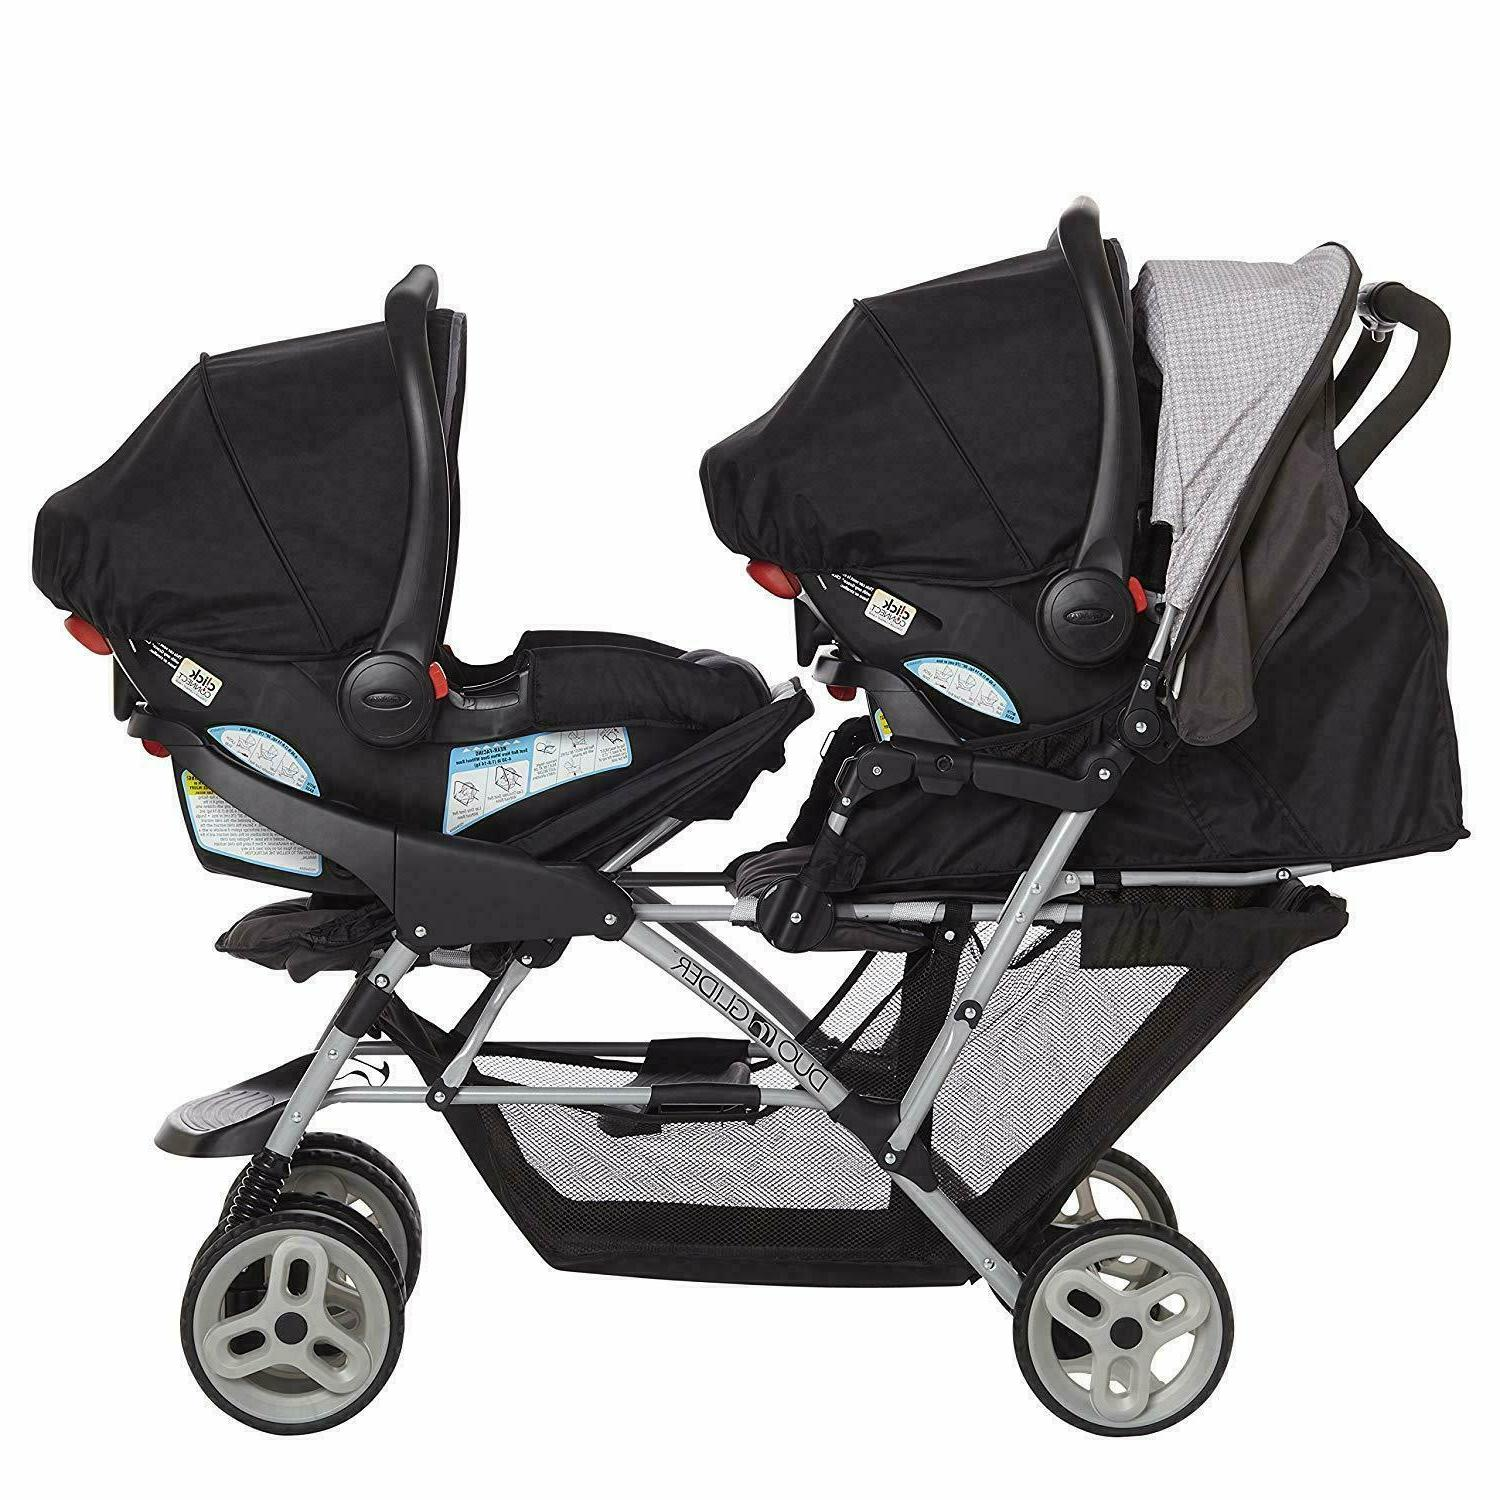 GRACO BABY DOUBLE STROLLER FOLDABLE WITH